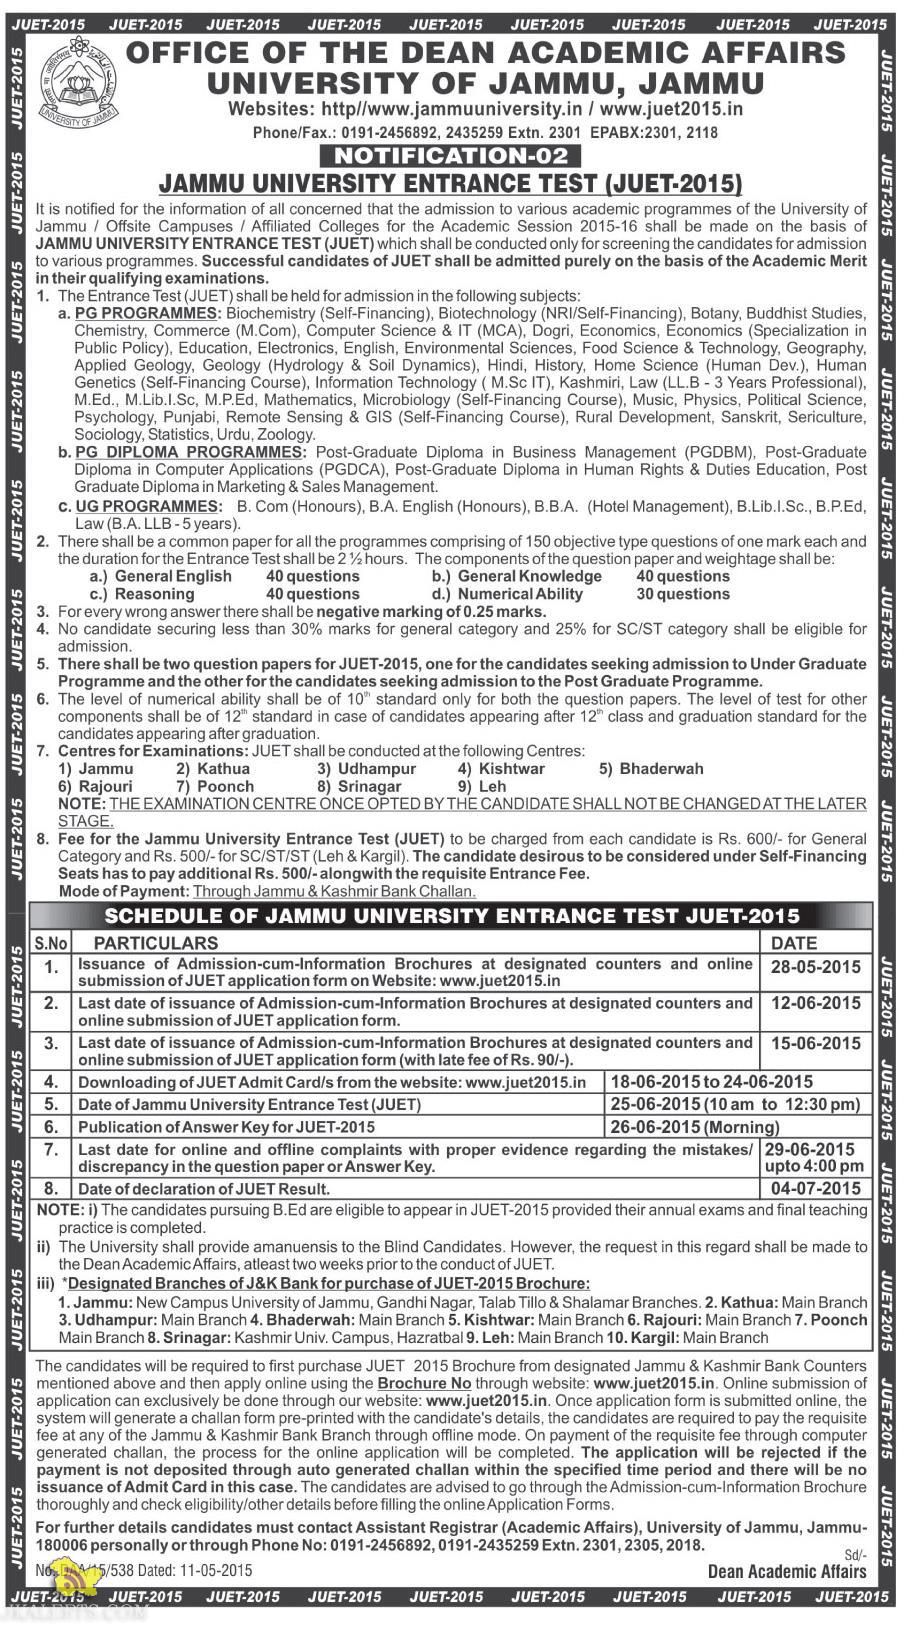 JAMMU UNIVERSITY ENTRANCE TEST (JUET-2015)